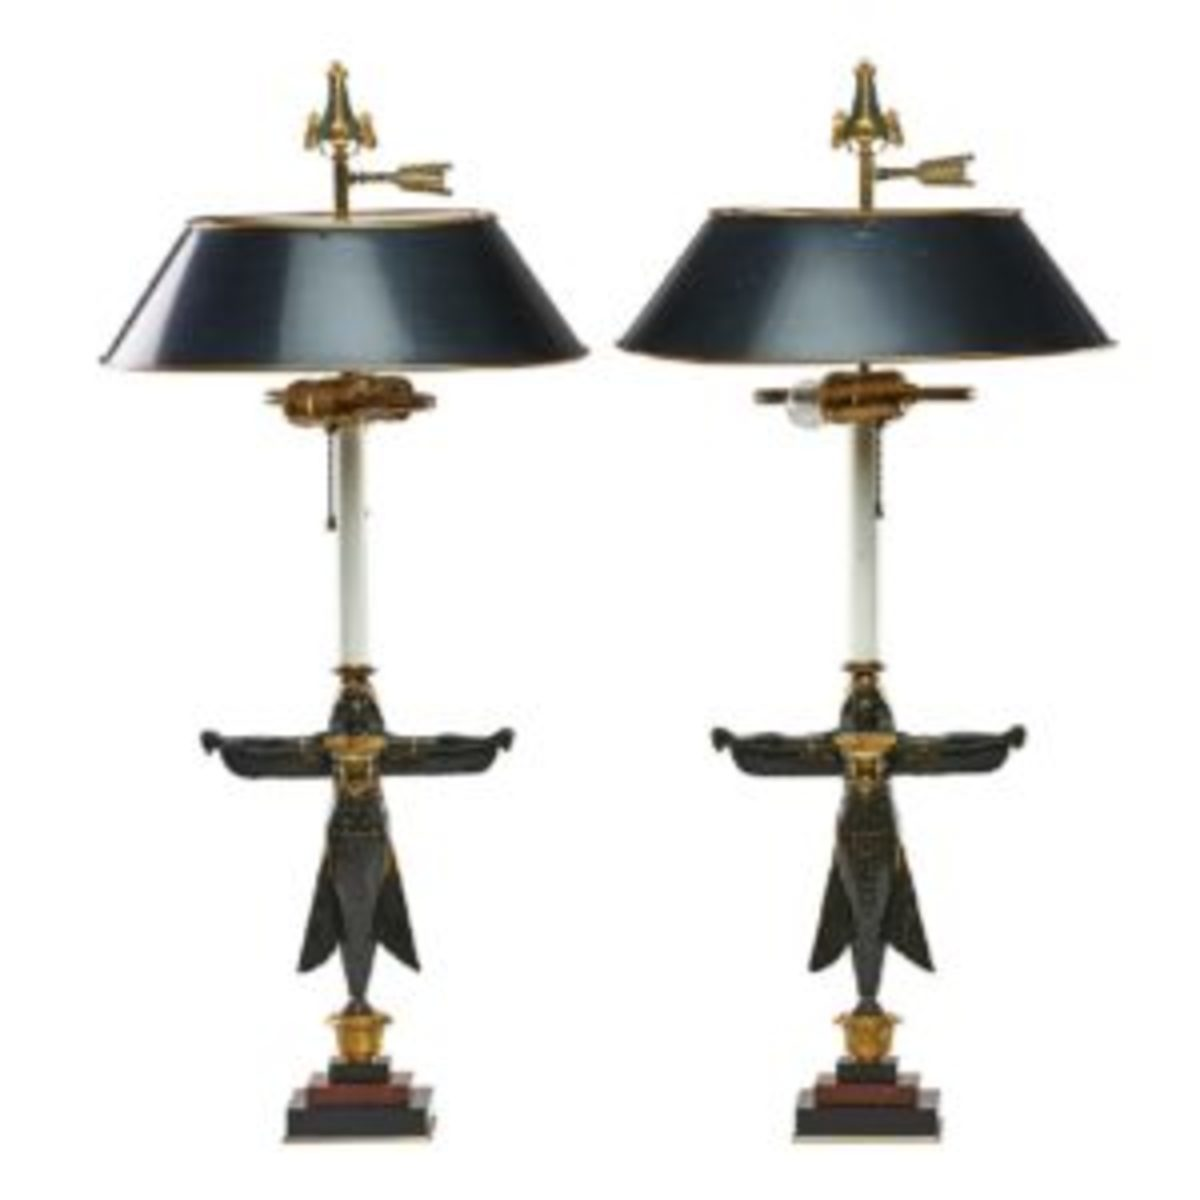 Egyptian revival table lamps